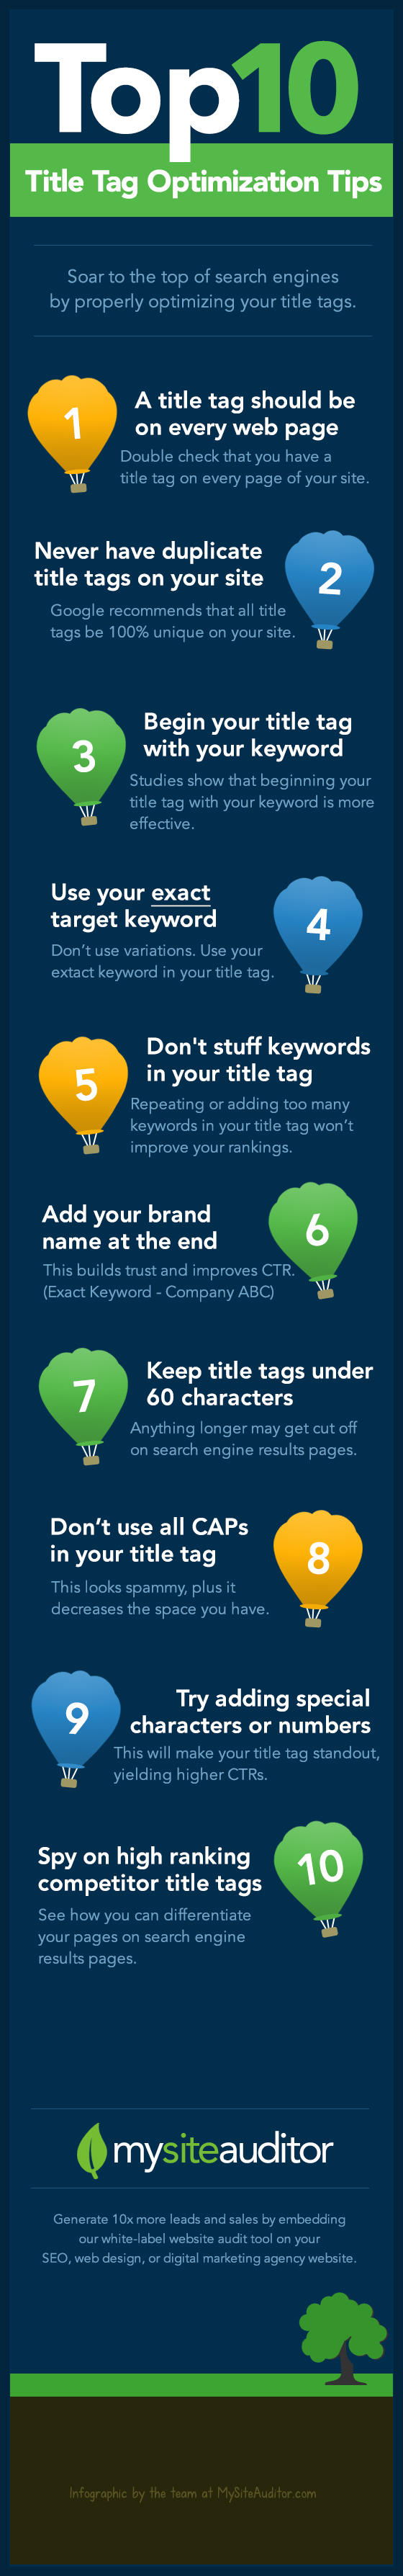 Top 10 Title Tag SEO Tips